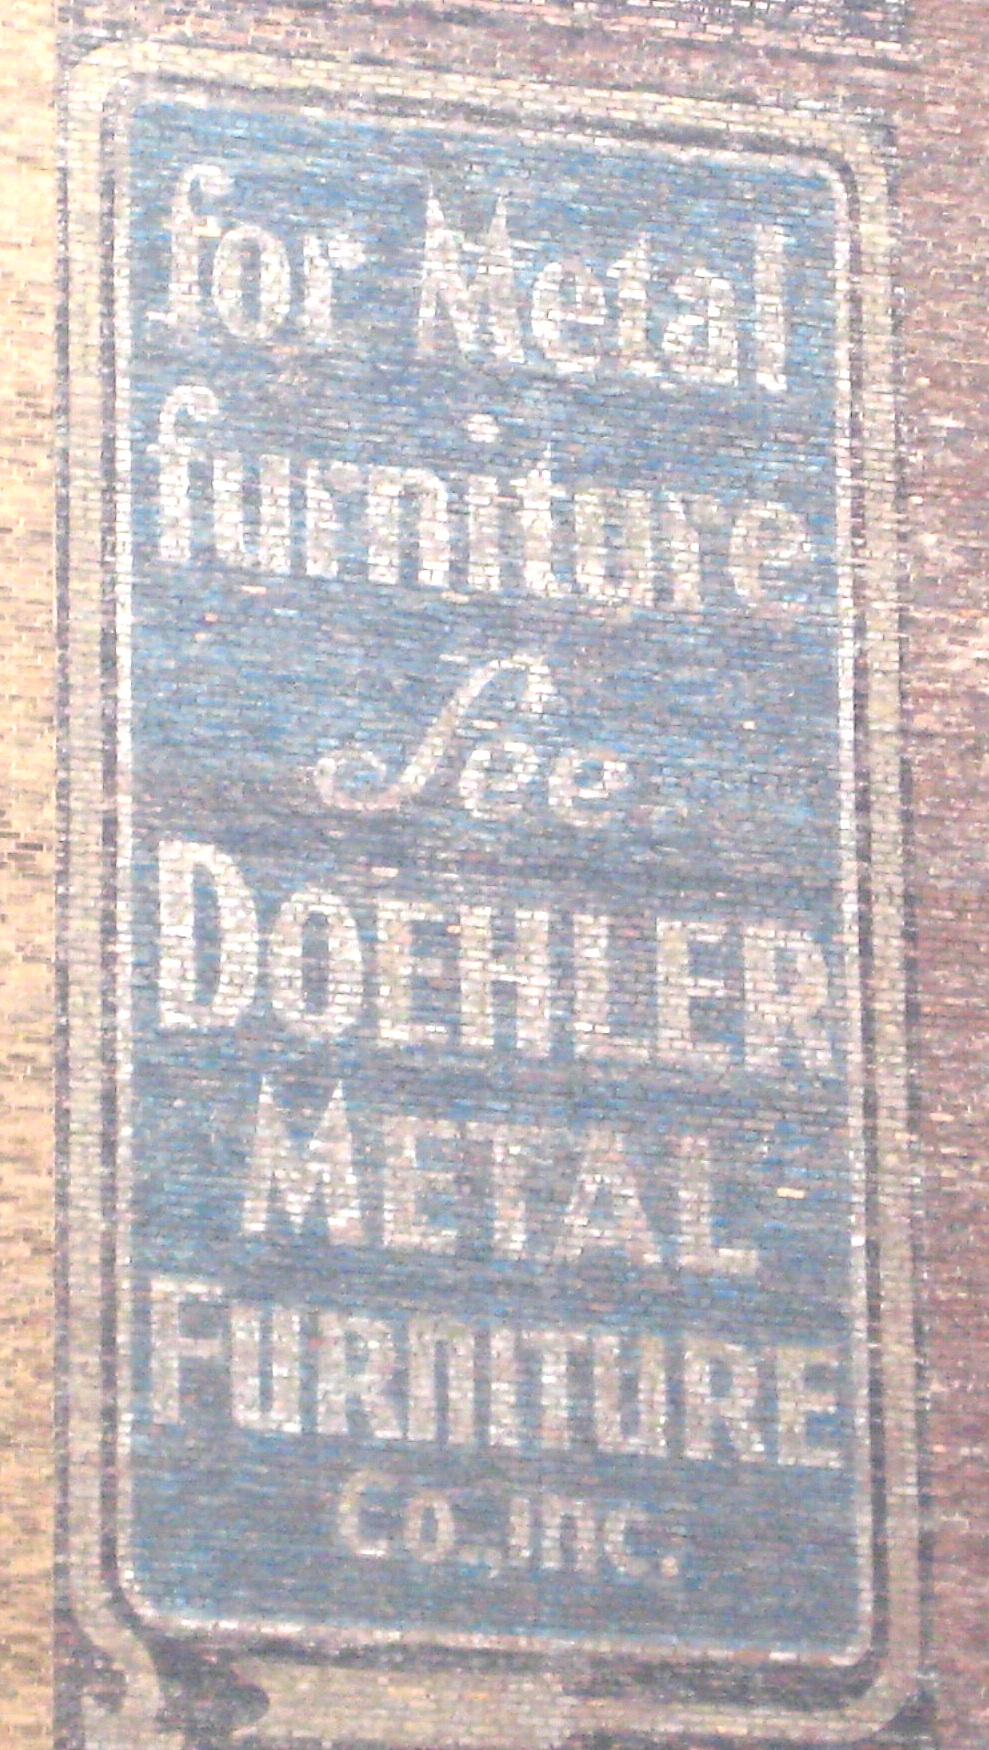 Doehler Metal Furniture Company Ephemeral New York